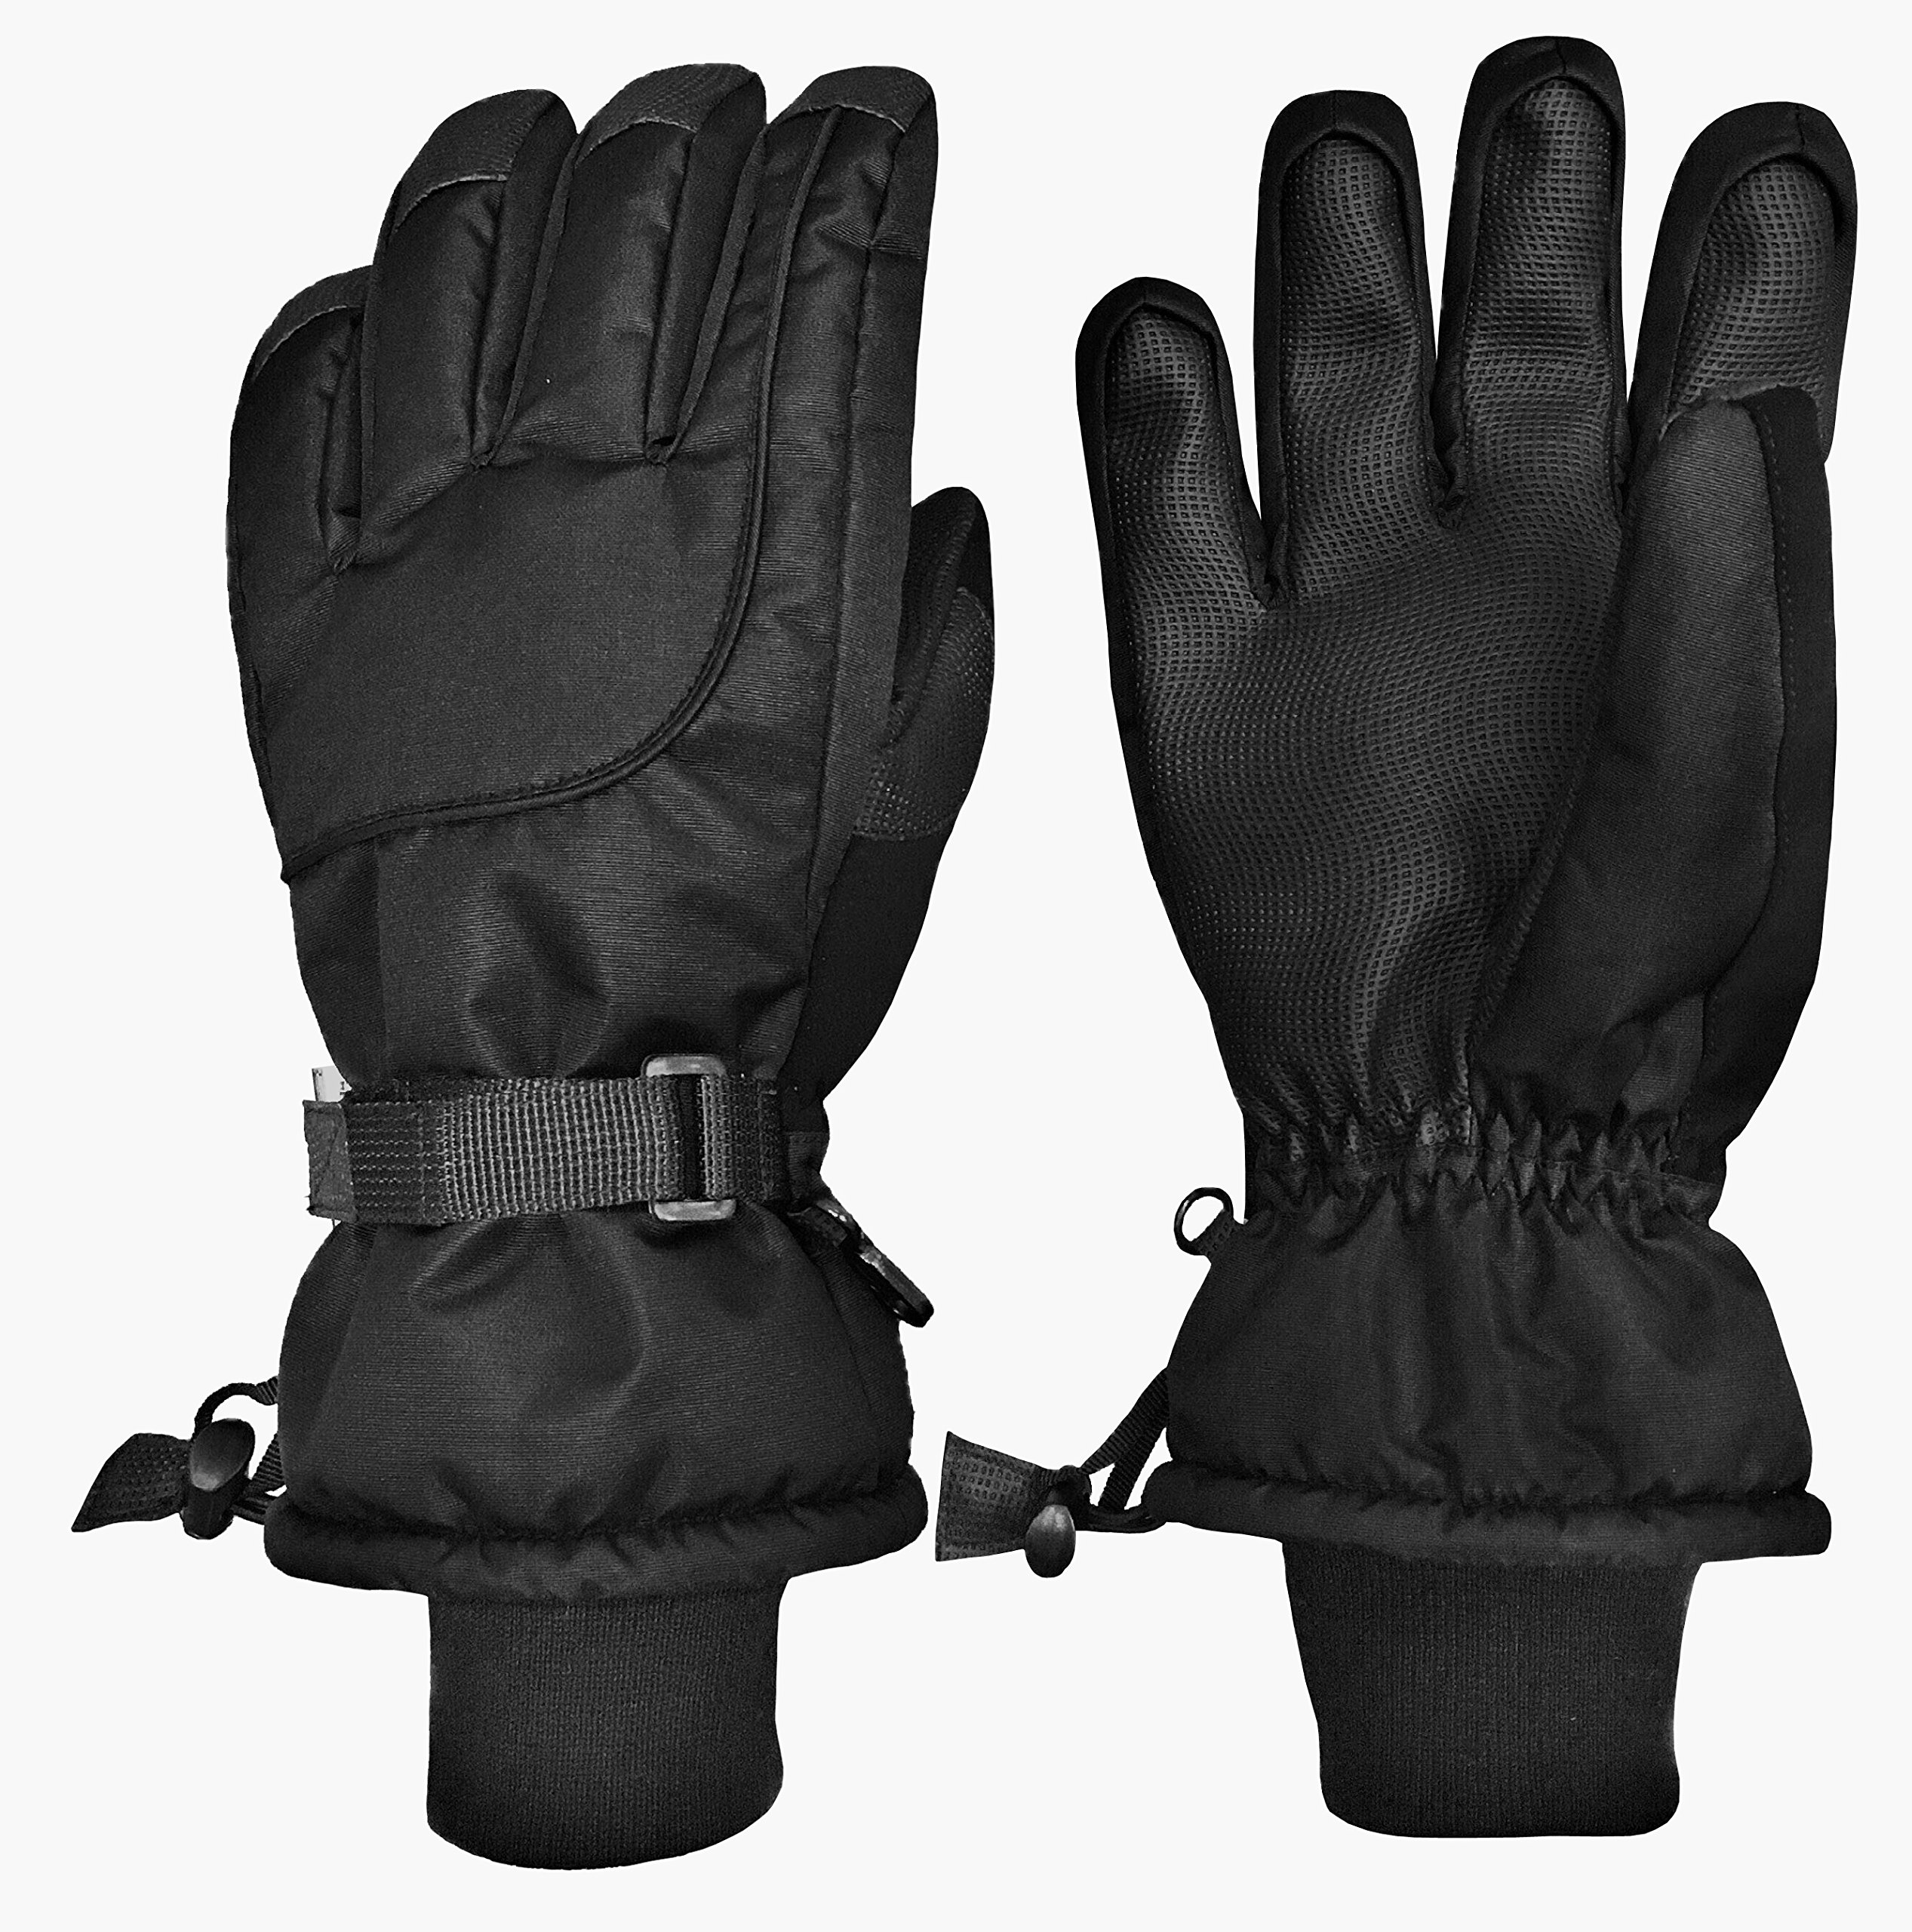 N'Ice Caps Kids Extreme Cold Weather 80 Gram Thinsulate Waterproof Ski Gloves (10-12yrs, Black)